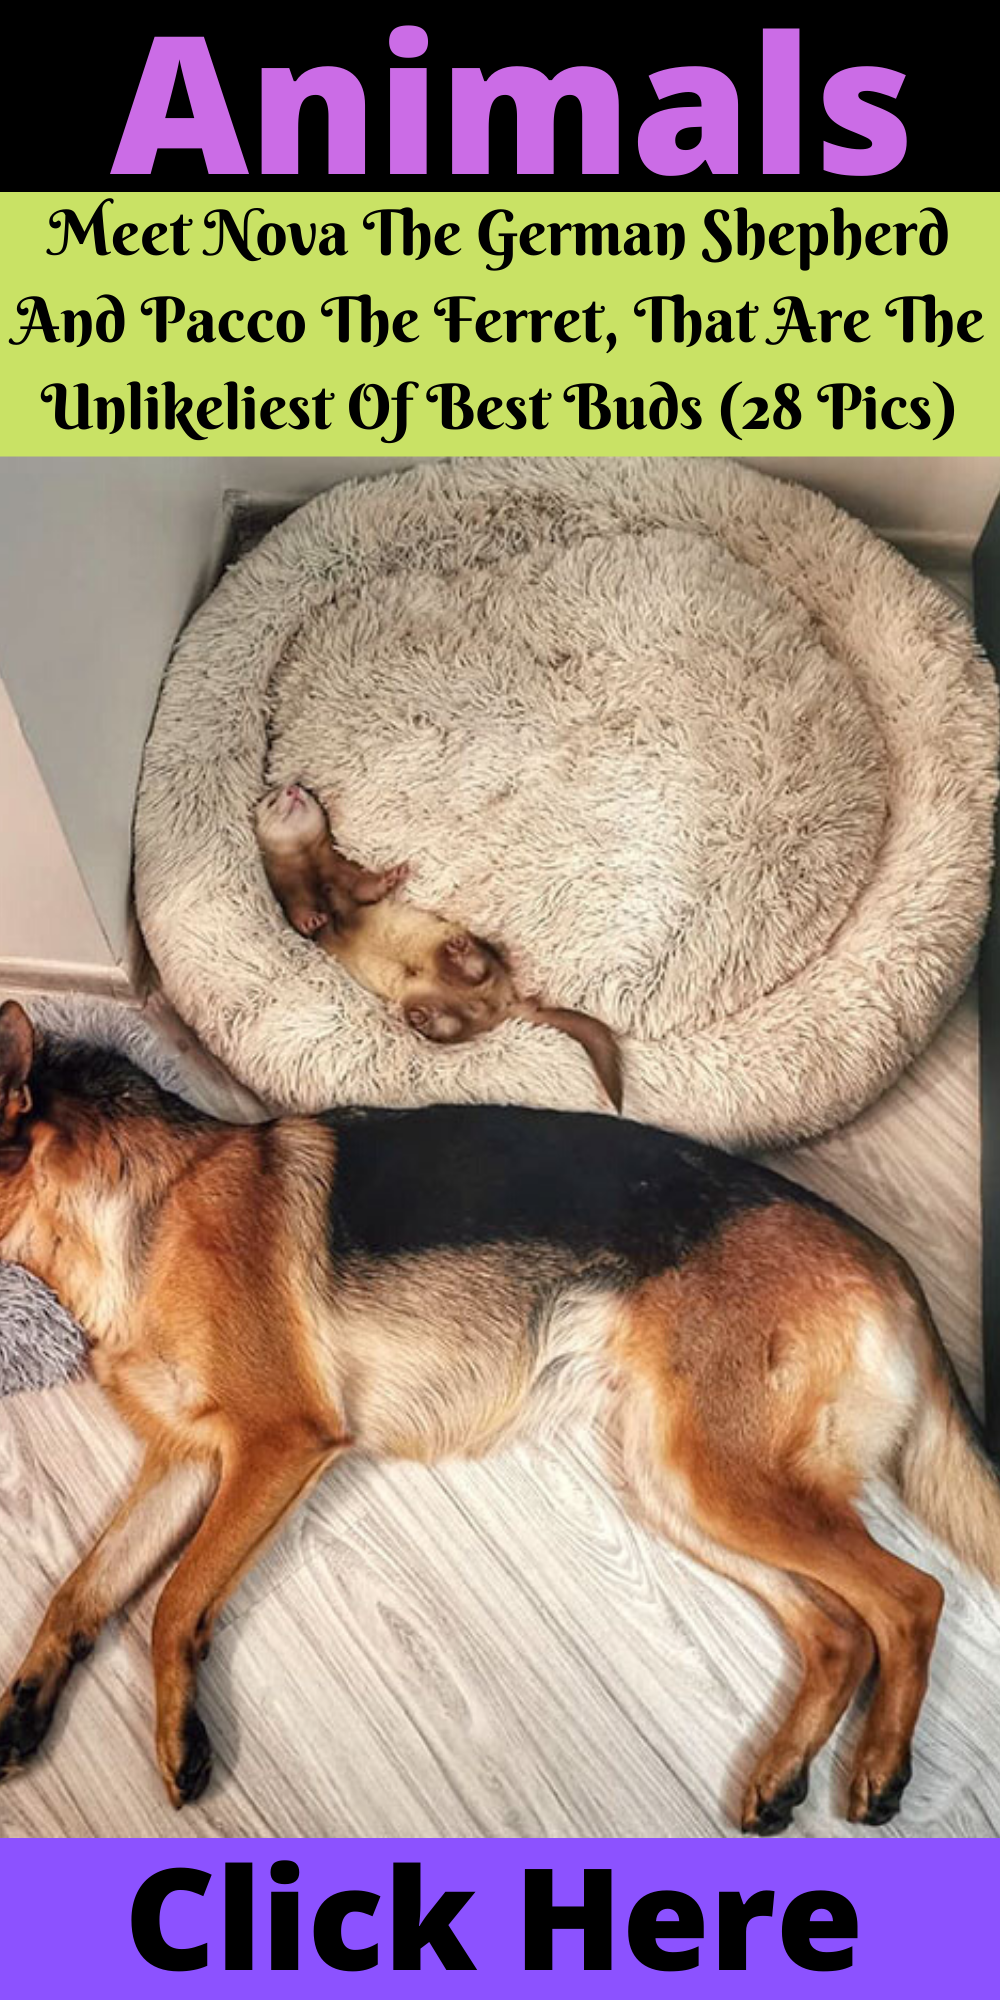 Meet Nova The German Shepherd And Pacco The Ferret That Are The Unlikeliest Of Best Buds 28 Pics Unusual Animal Friendships Animals Animals Friendship